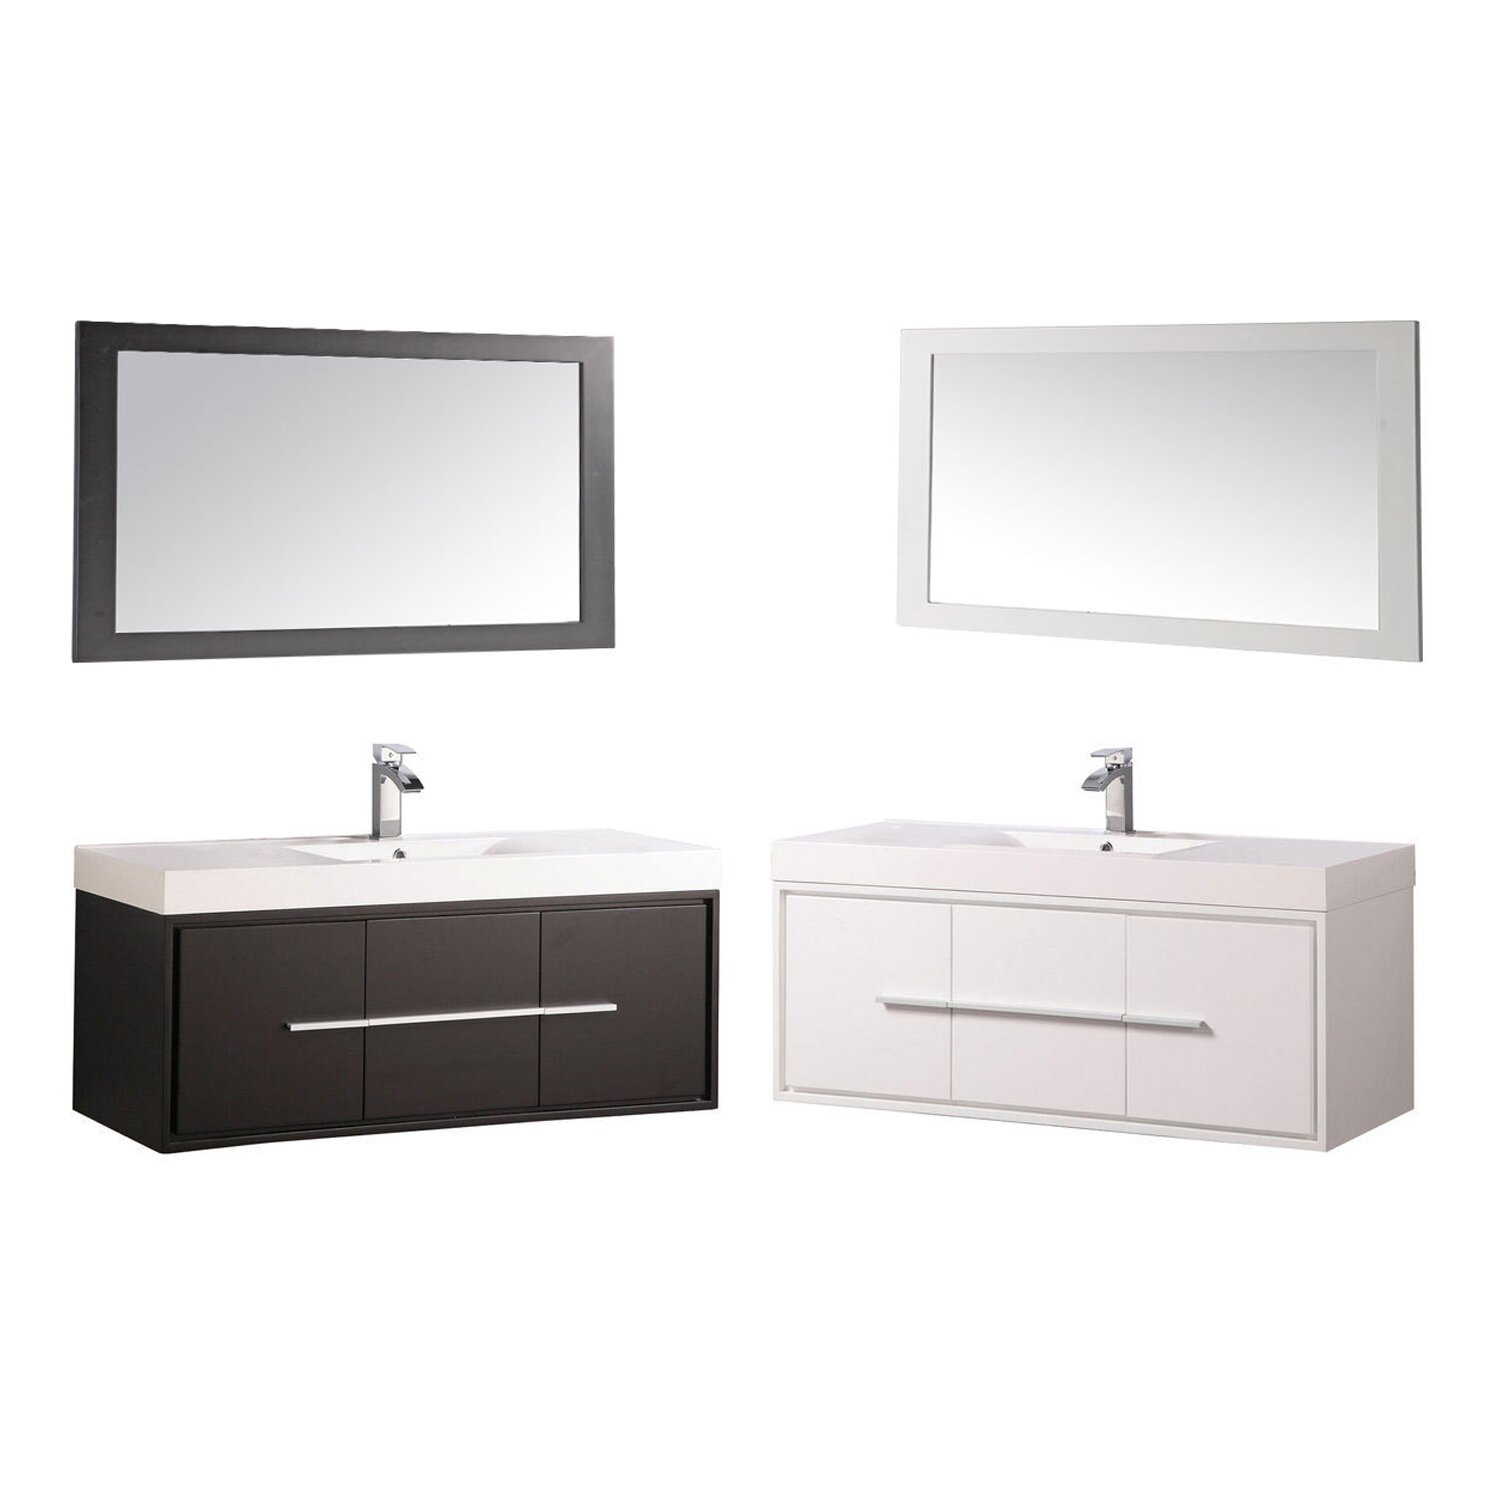 Mtdvanities Cypress 48 Single Floating Bathroom Vanity